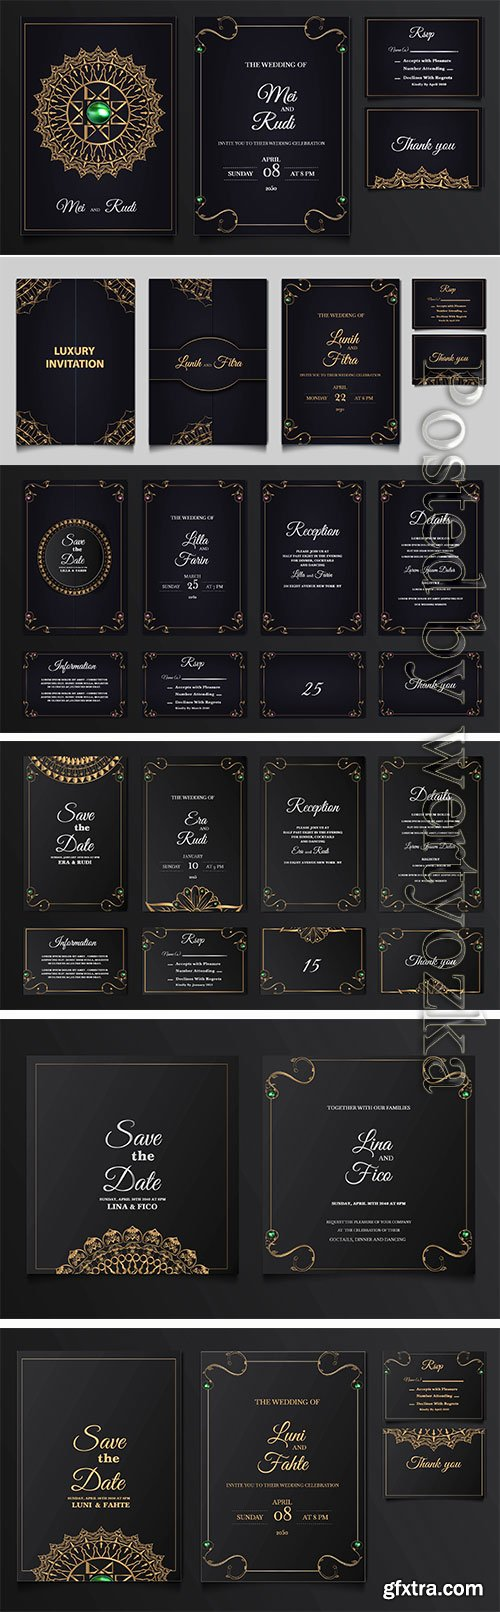 Set collection luxury save the date wedding invitation vector card